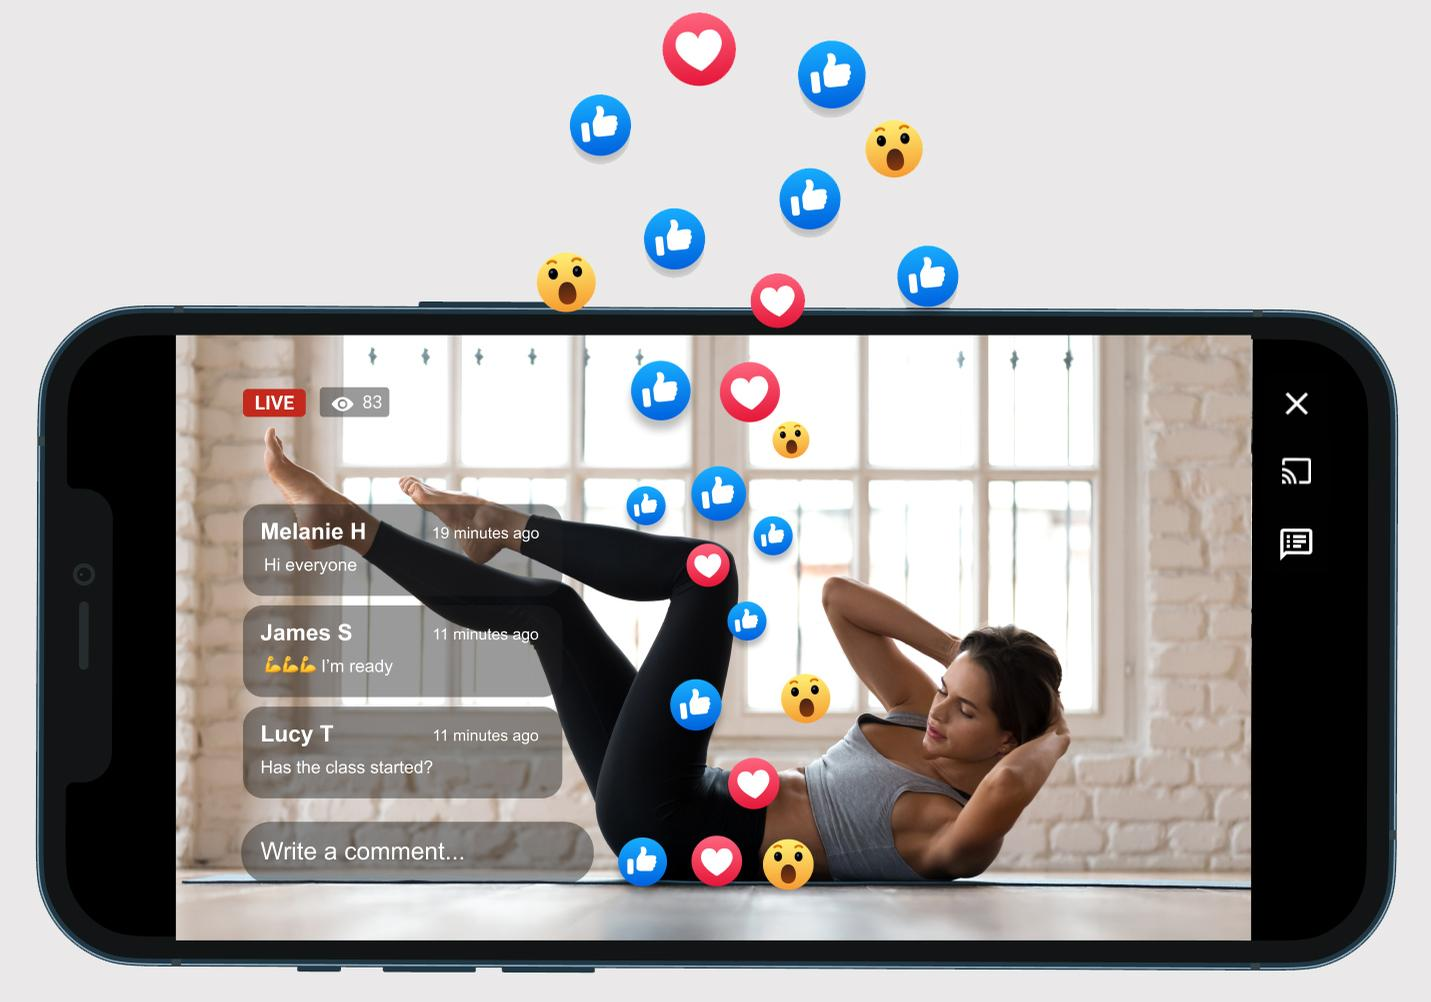 Emoji storms give members the opportunity to interact during workouts without having to type / myFitApp